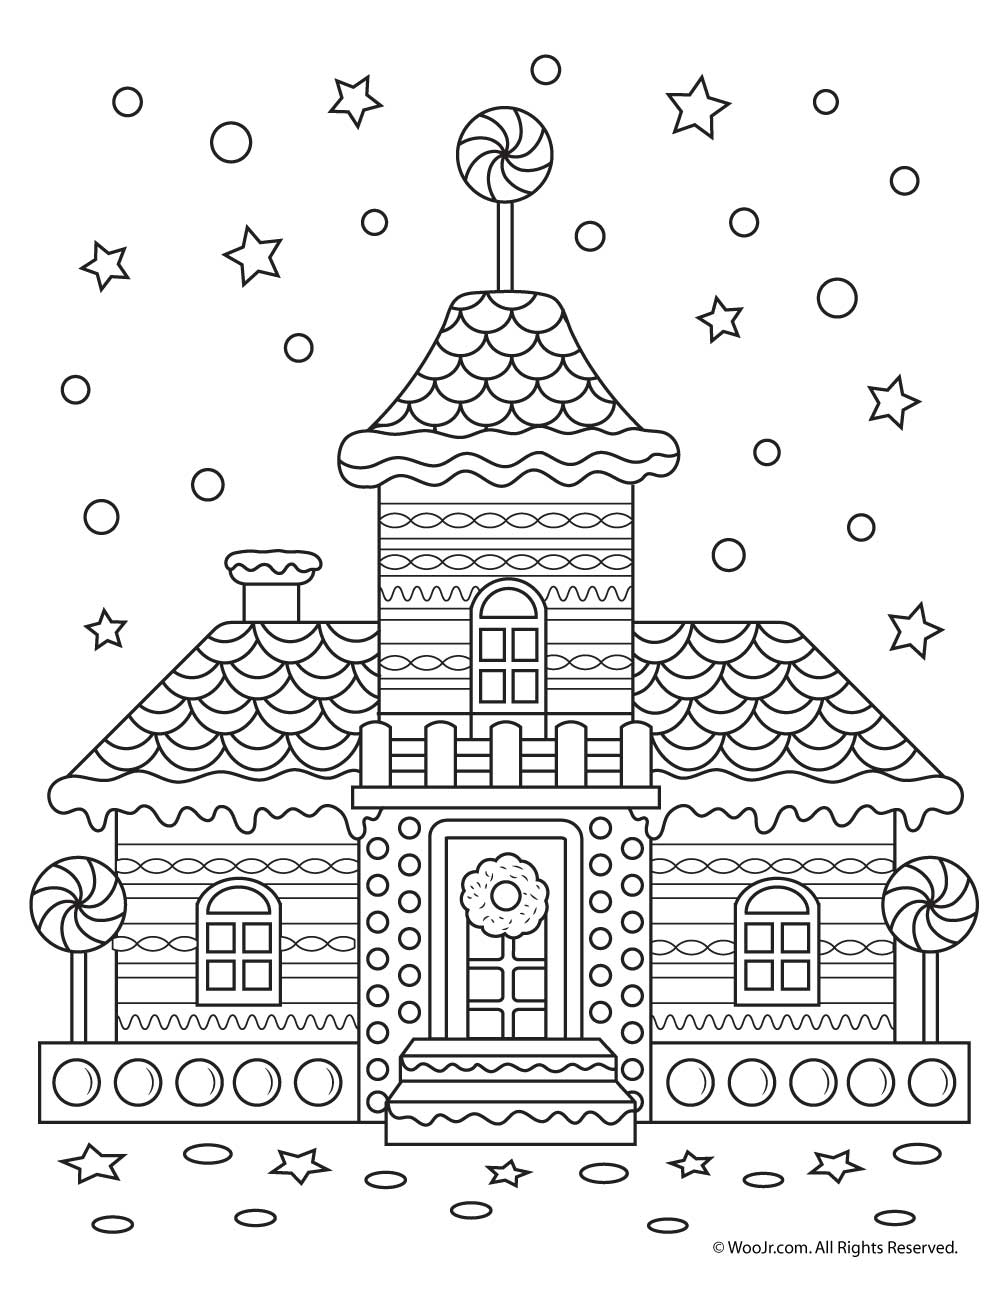 Gingerbread House Worksheets For Preschoolers. Gingerbread